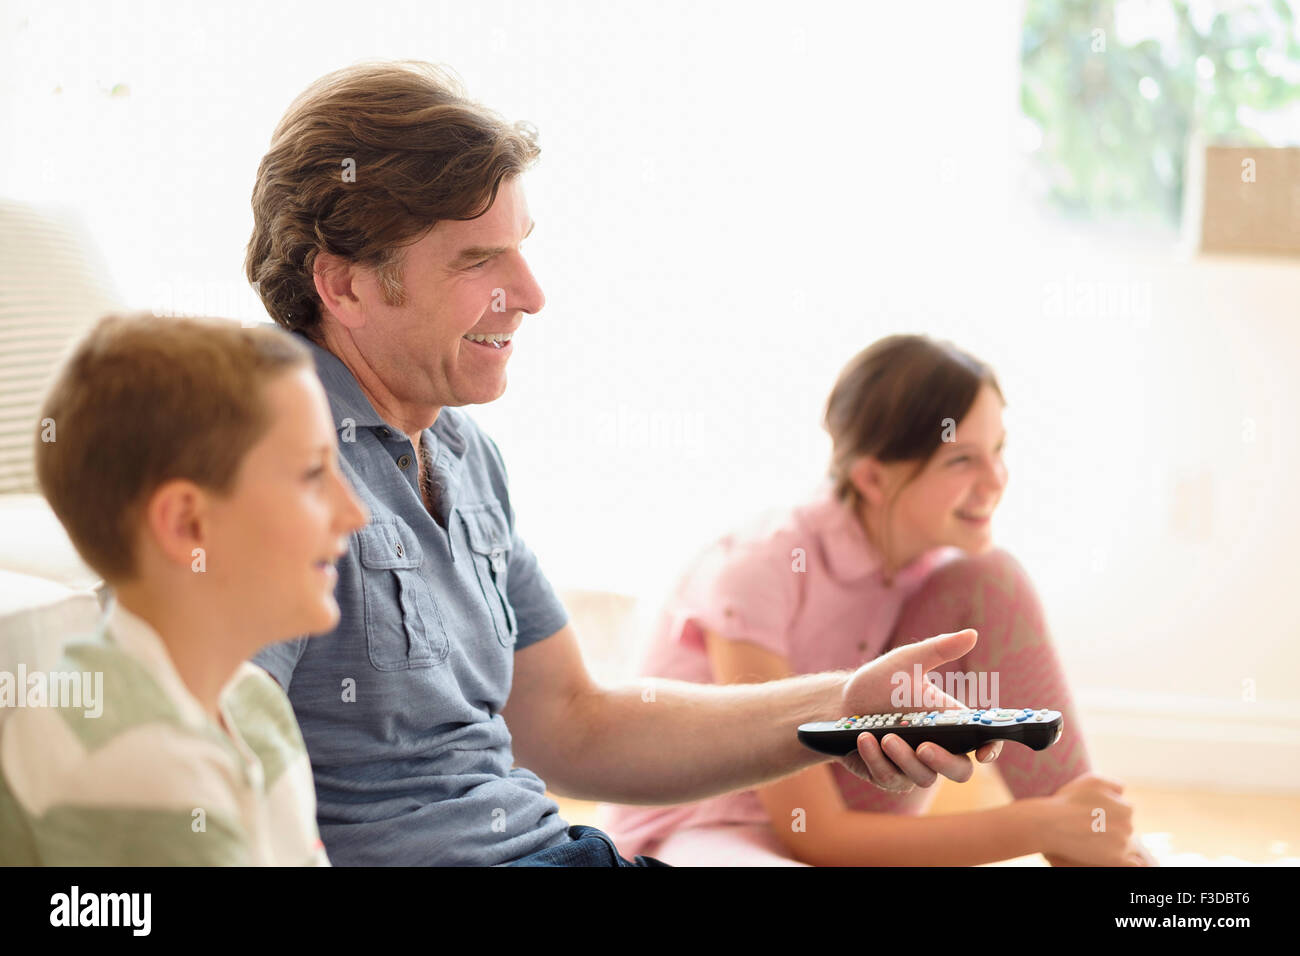 Children (8-9, 10-11) watching TV with their father - Stock Image